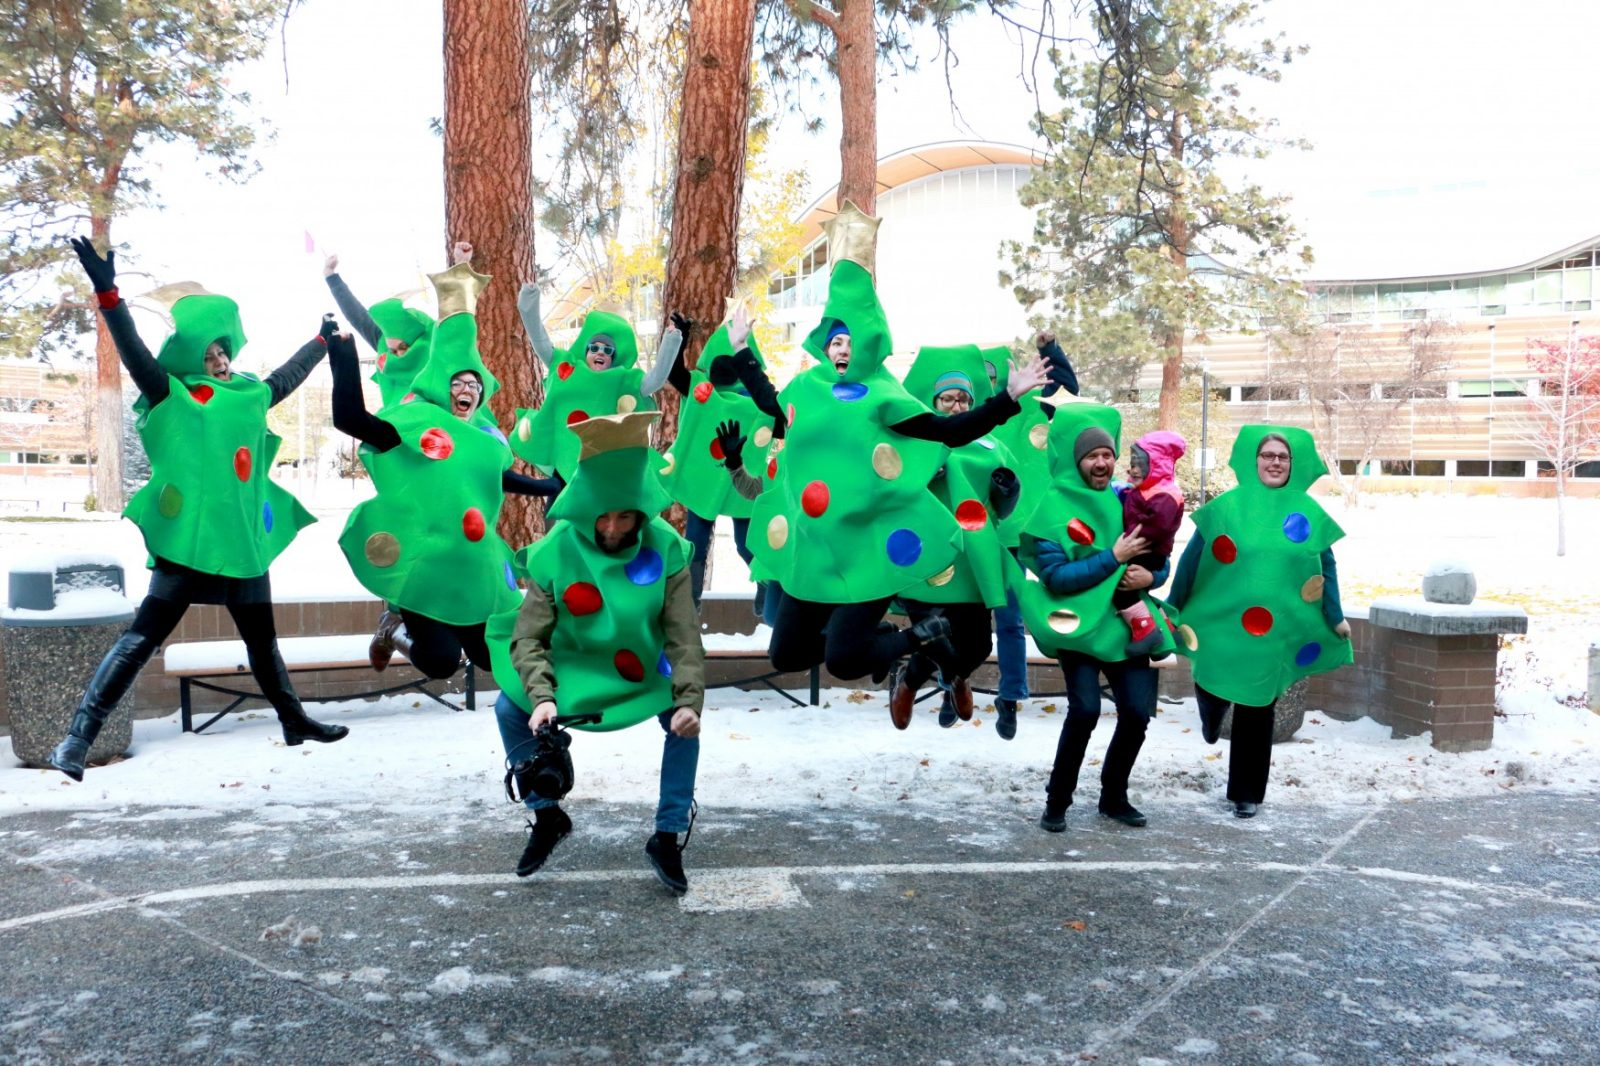 A picture with tree outfits